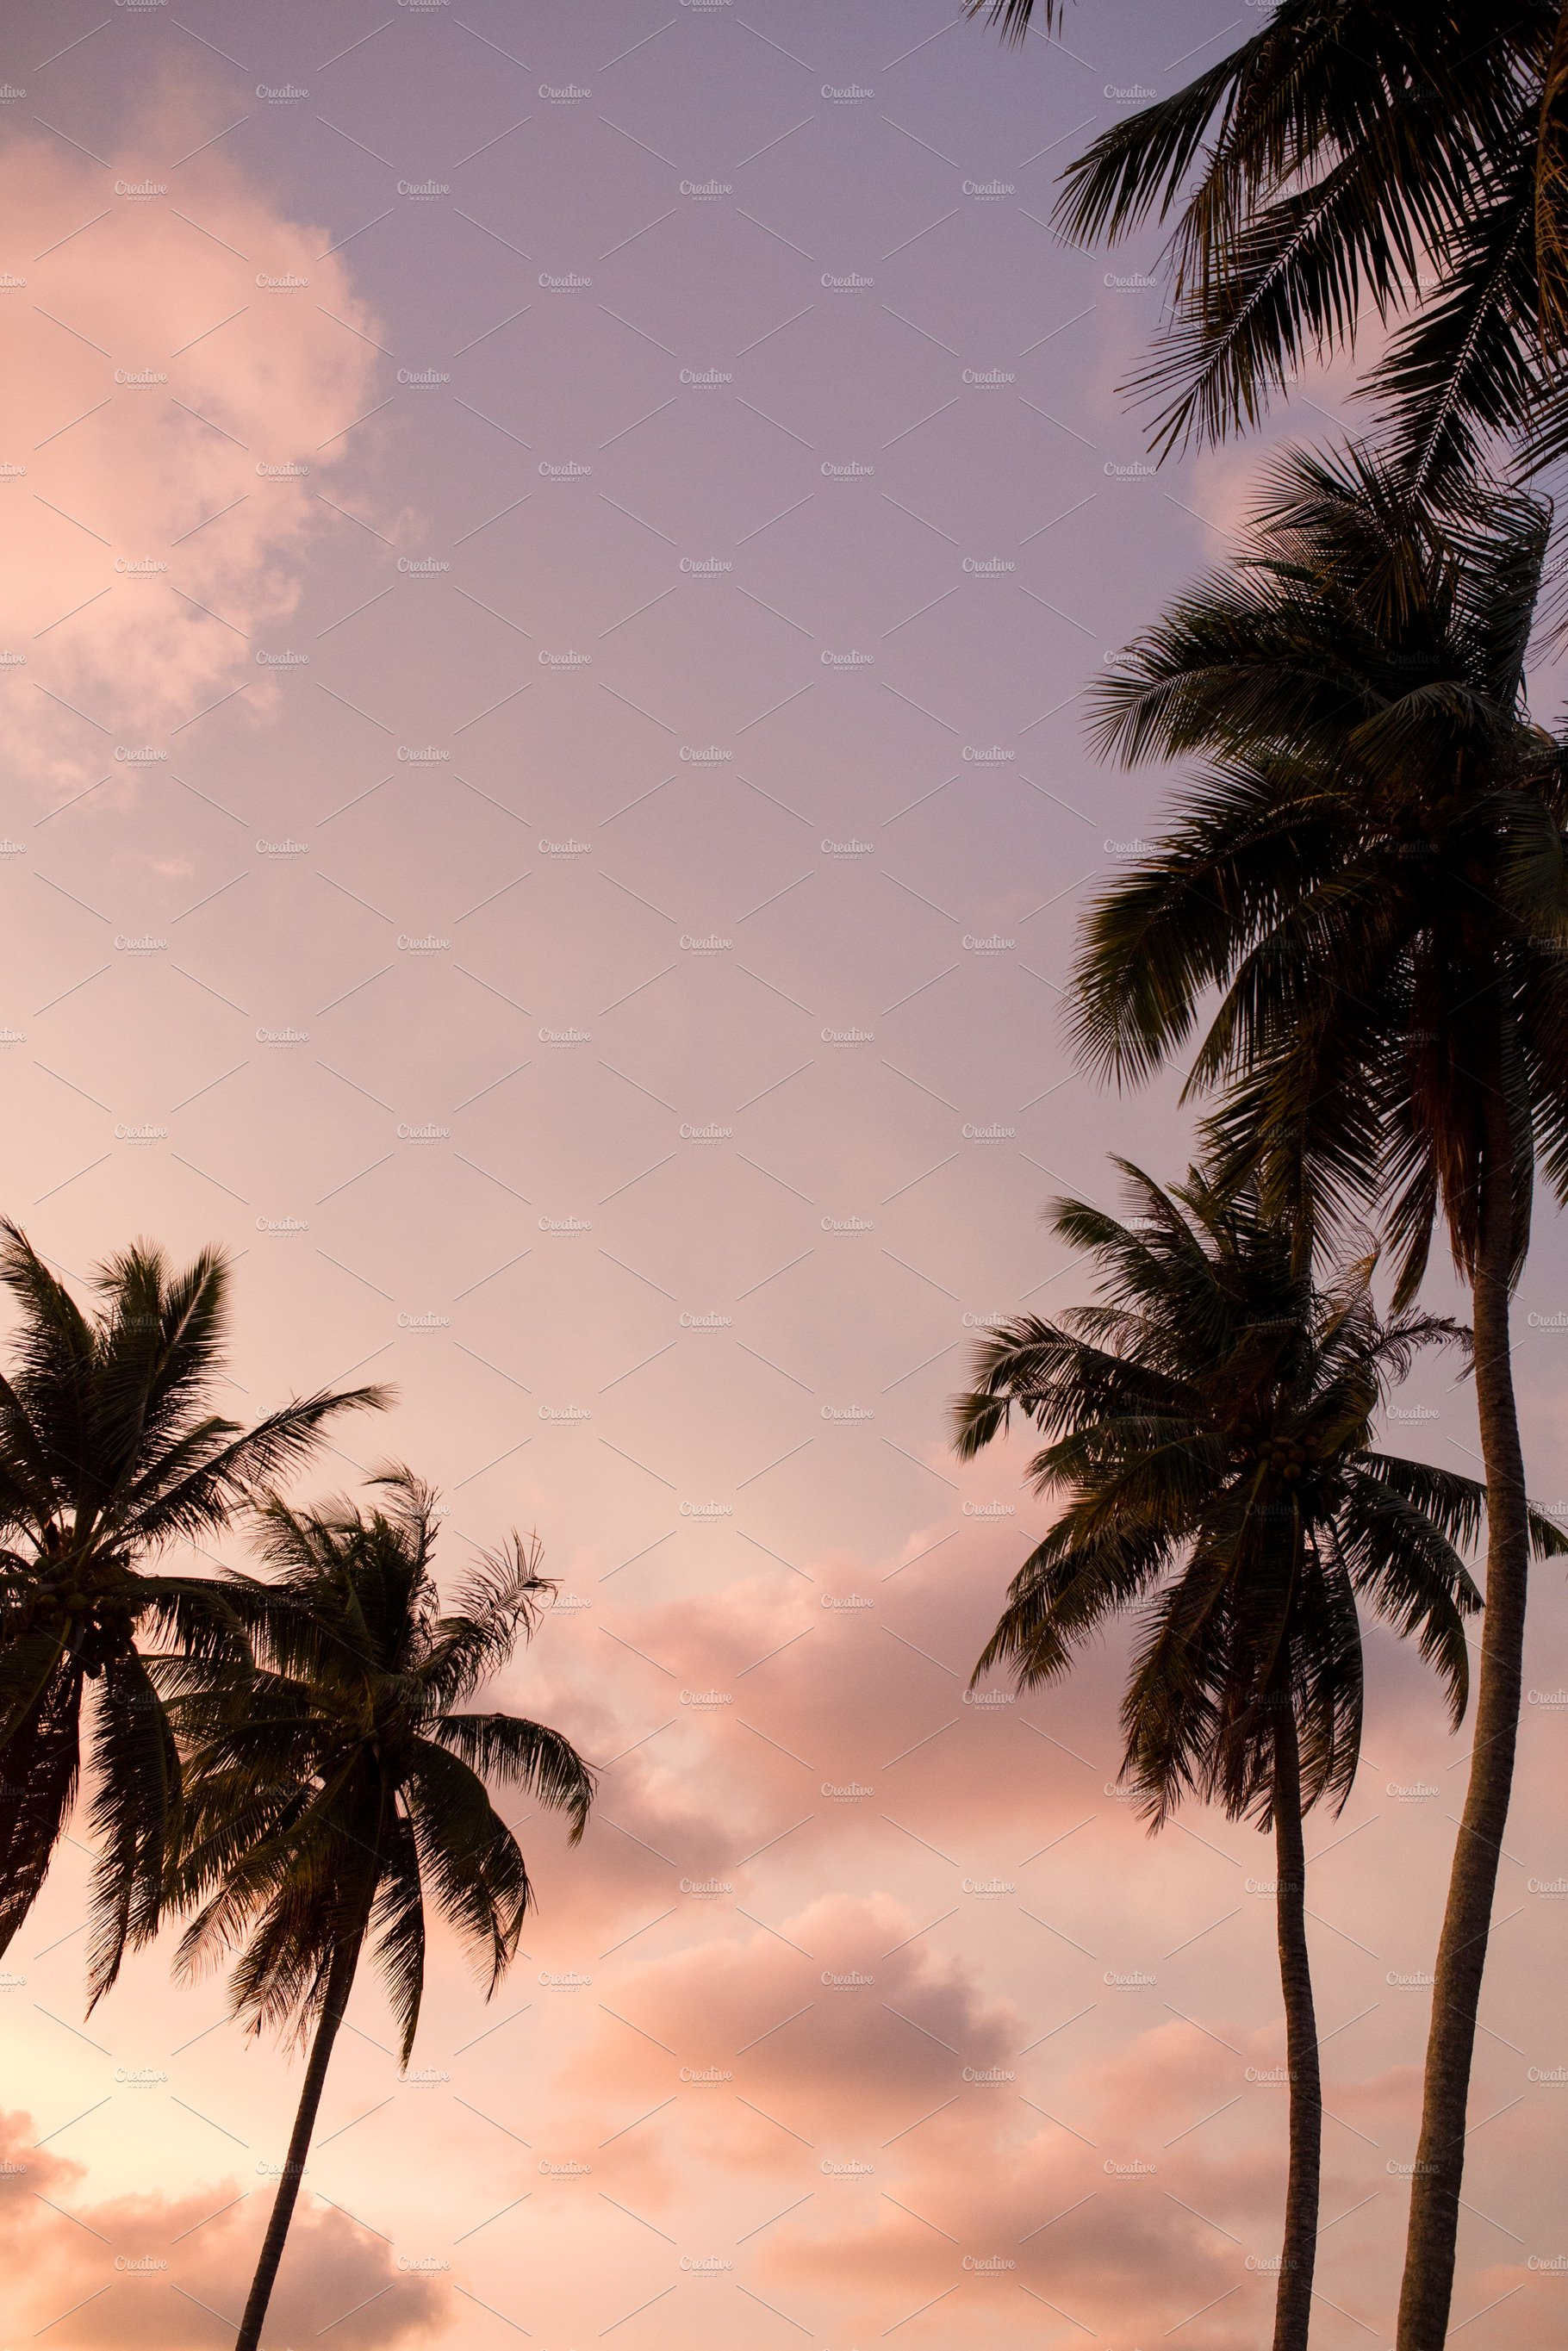 Palm Tree Silhouette And Pink Sunset High Quality Nature Stock Photos Creative Market